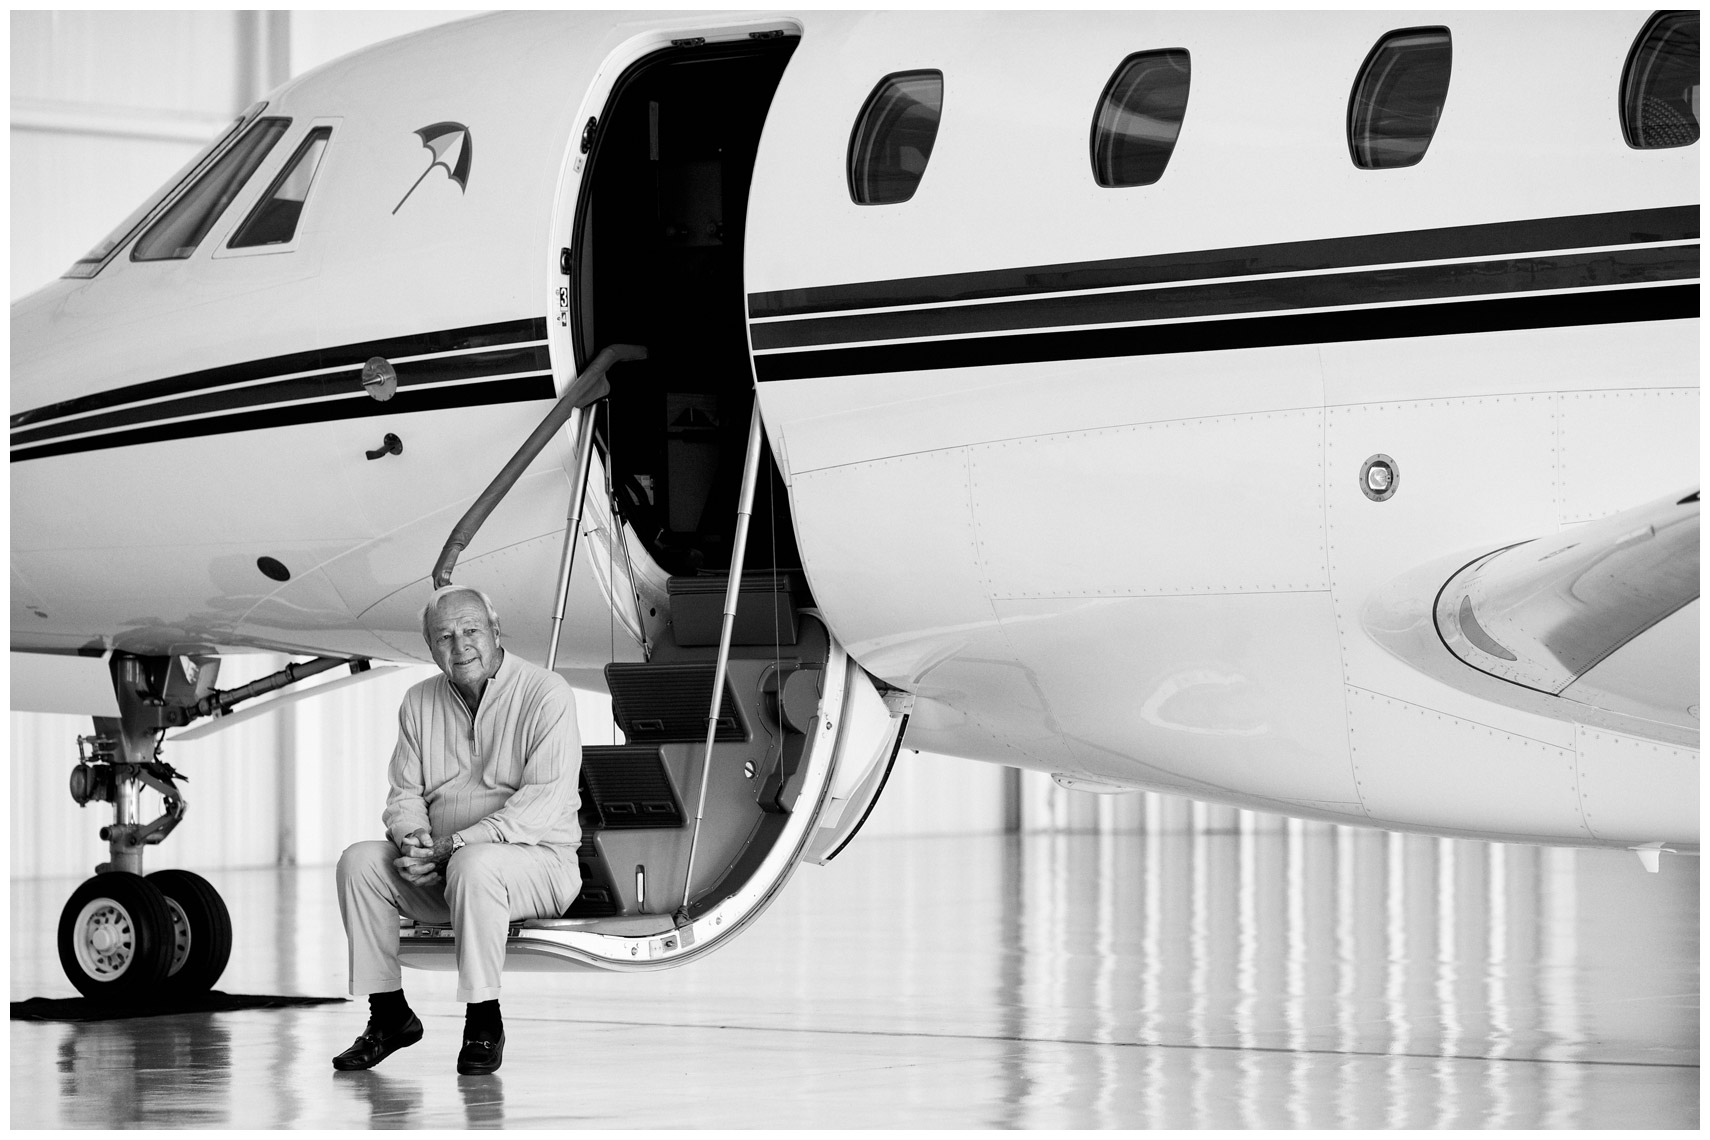 Arnold Palmer, shortly after completing his final flight as a pilot.